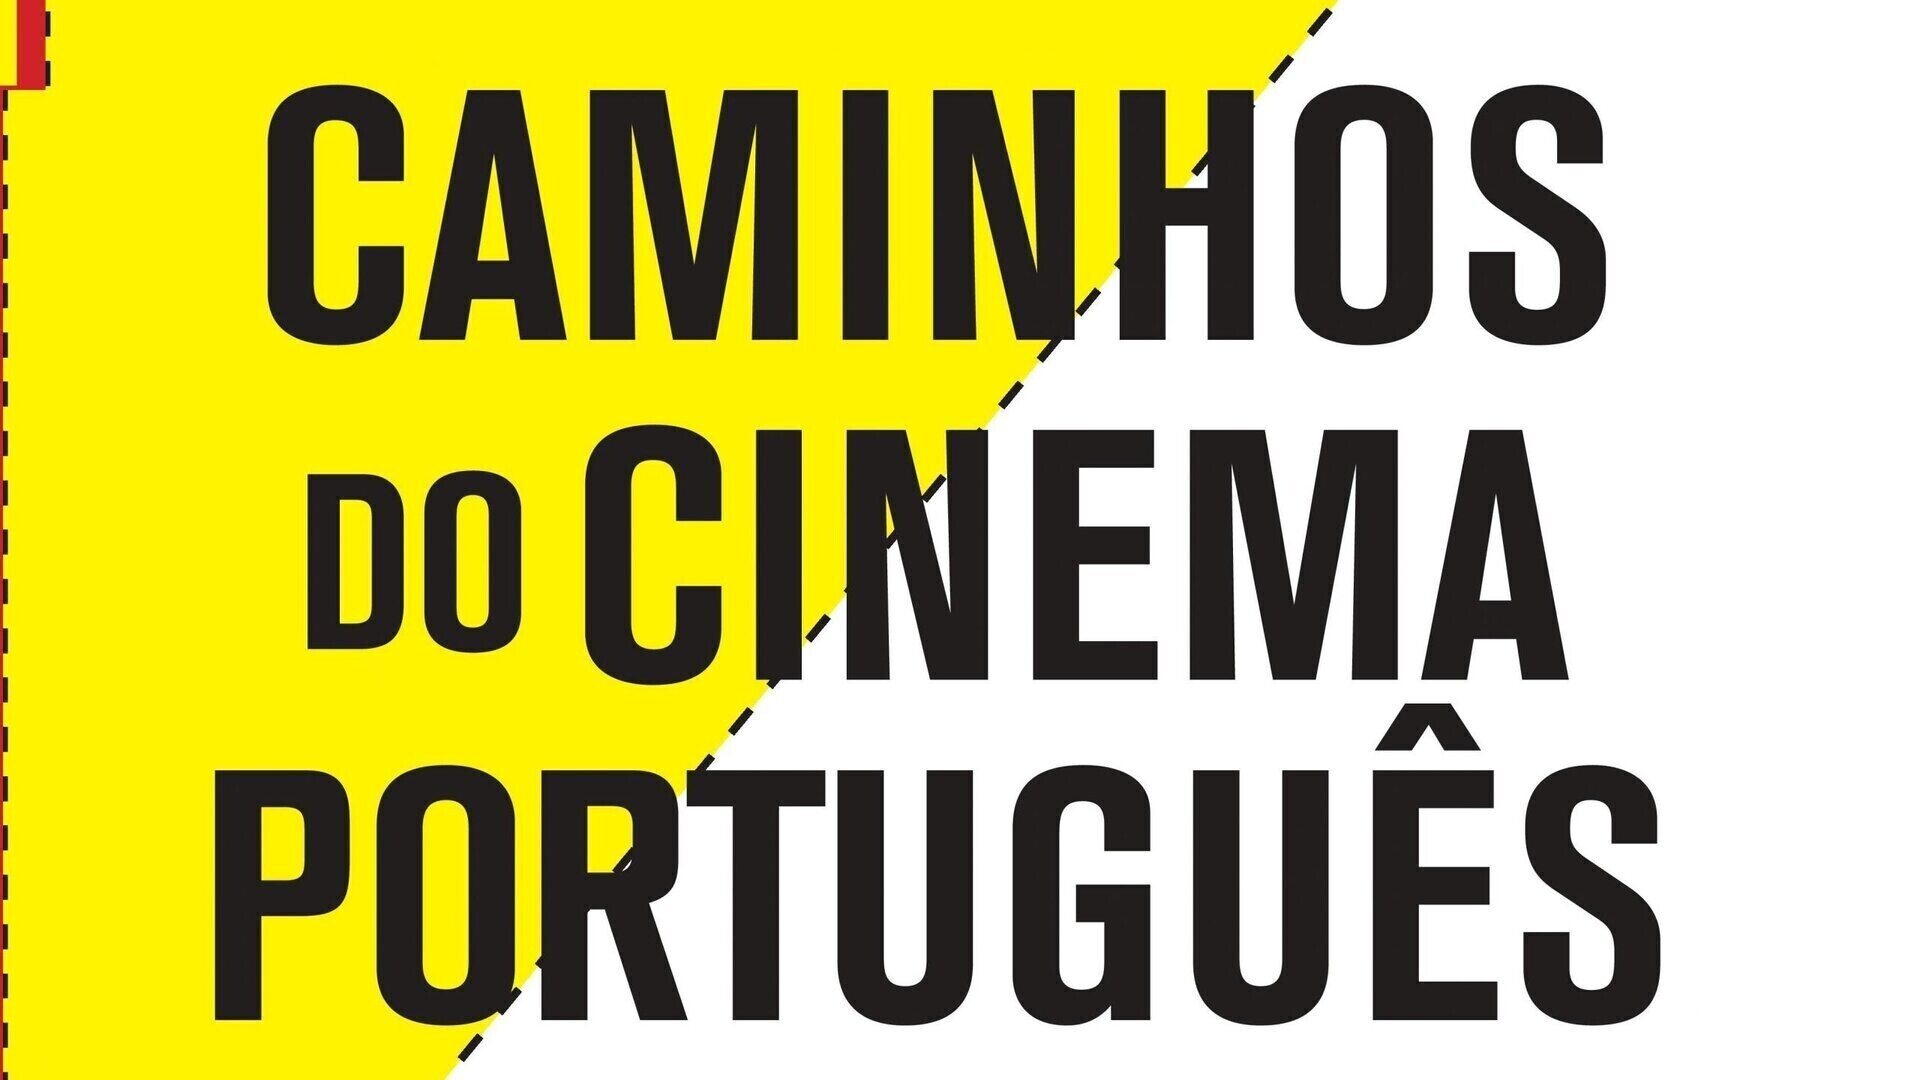 Caminhos-do-Cinema-Portugues-page-003-scaled.jpg